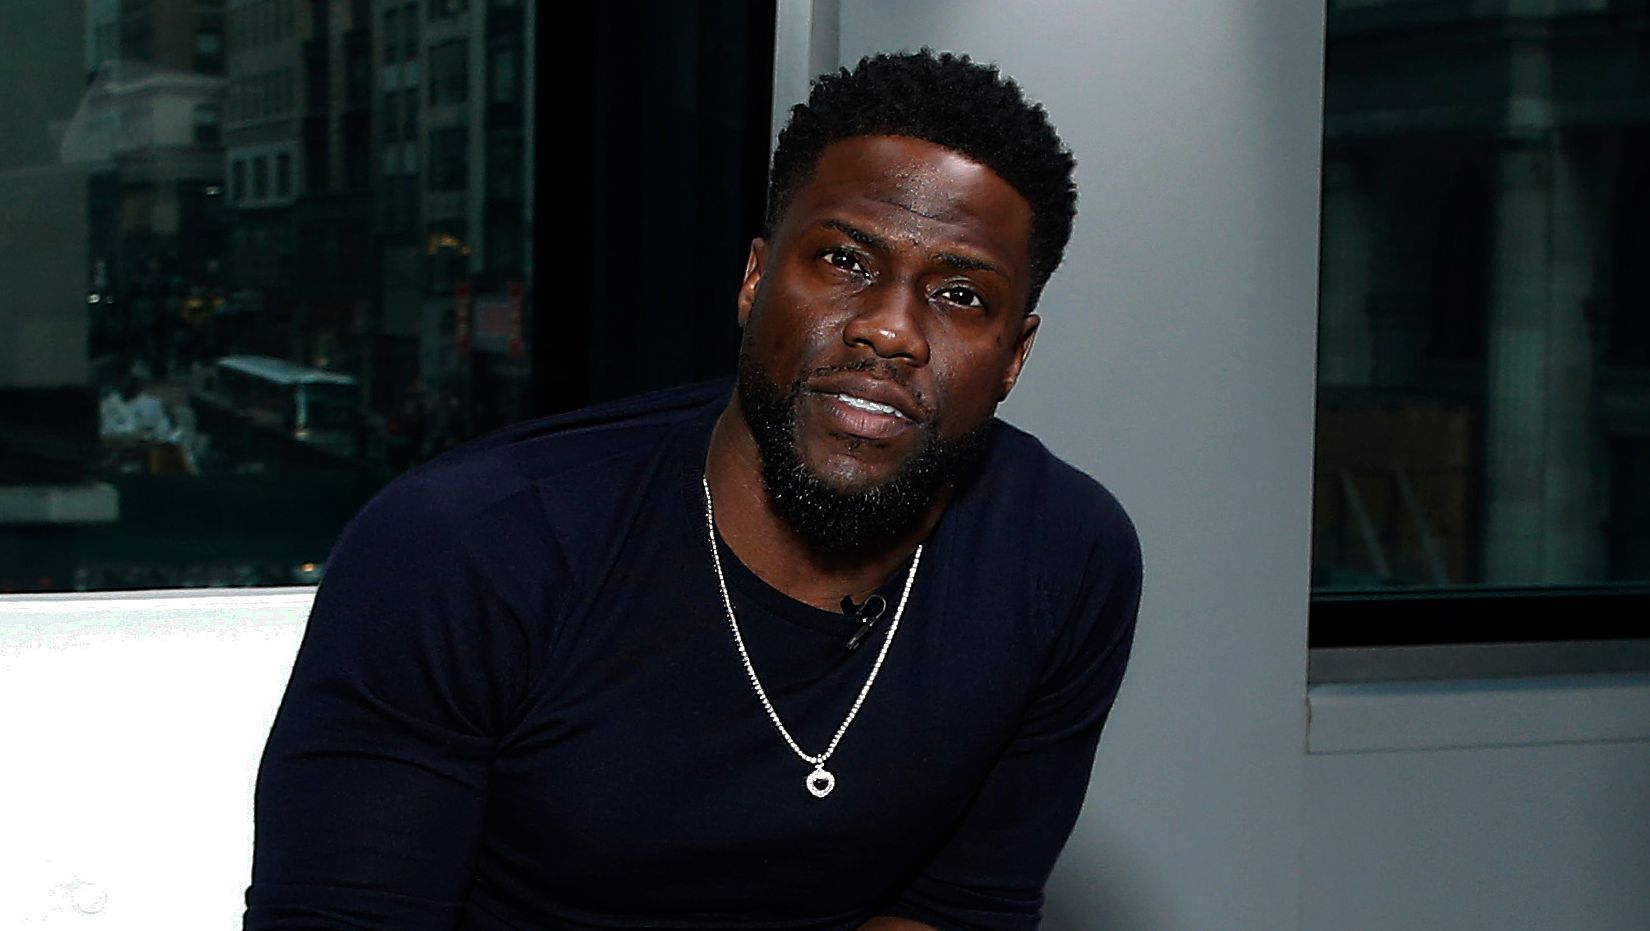 Kevin Hart Shares His Recovery Following Terrible Car Crash And Offers Fans Gratitude For Their Support